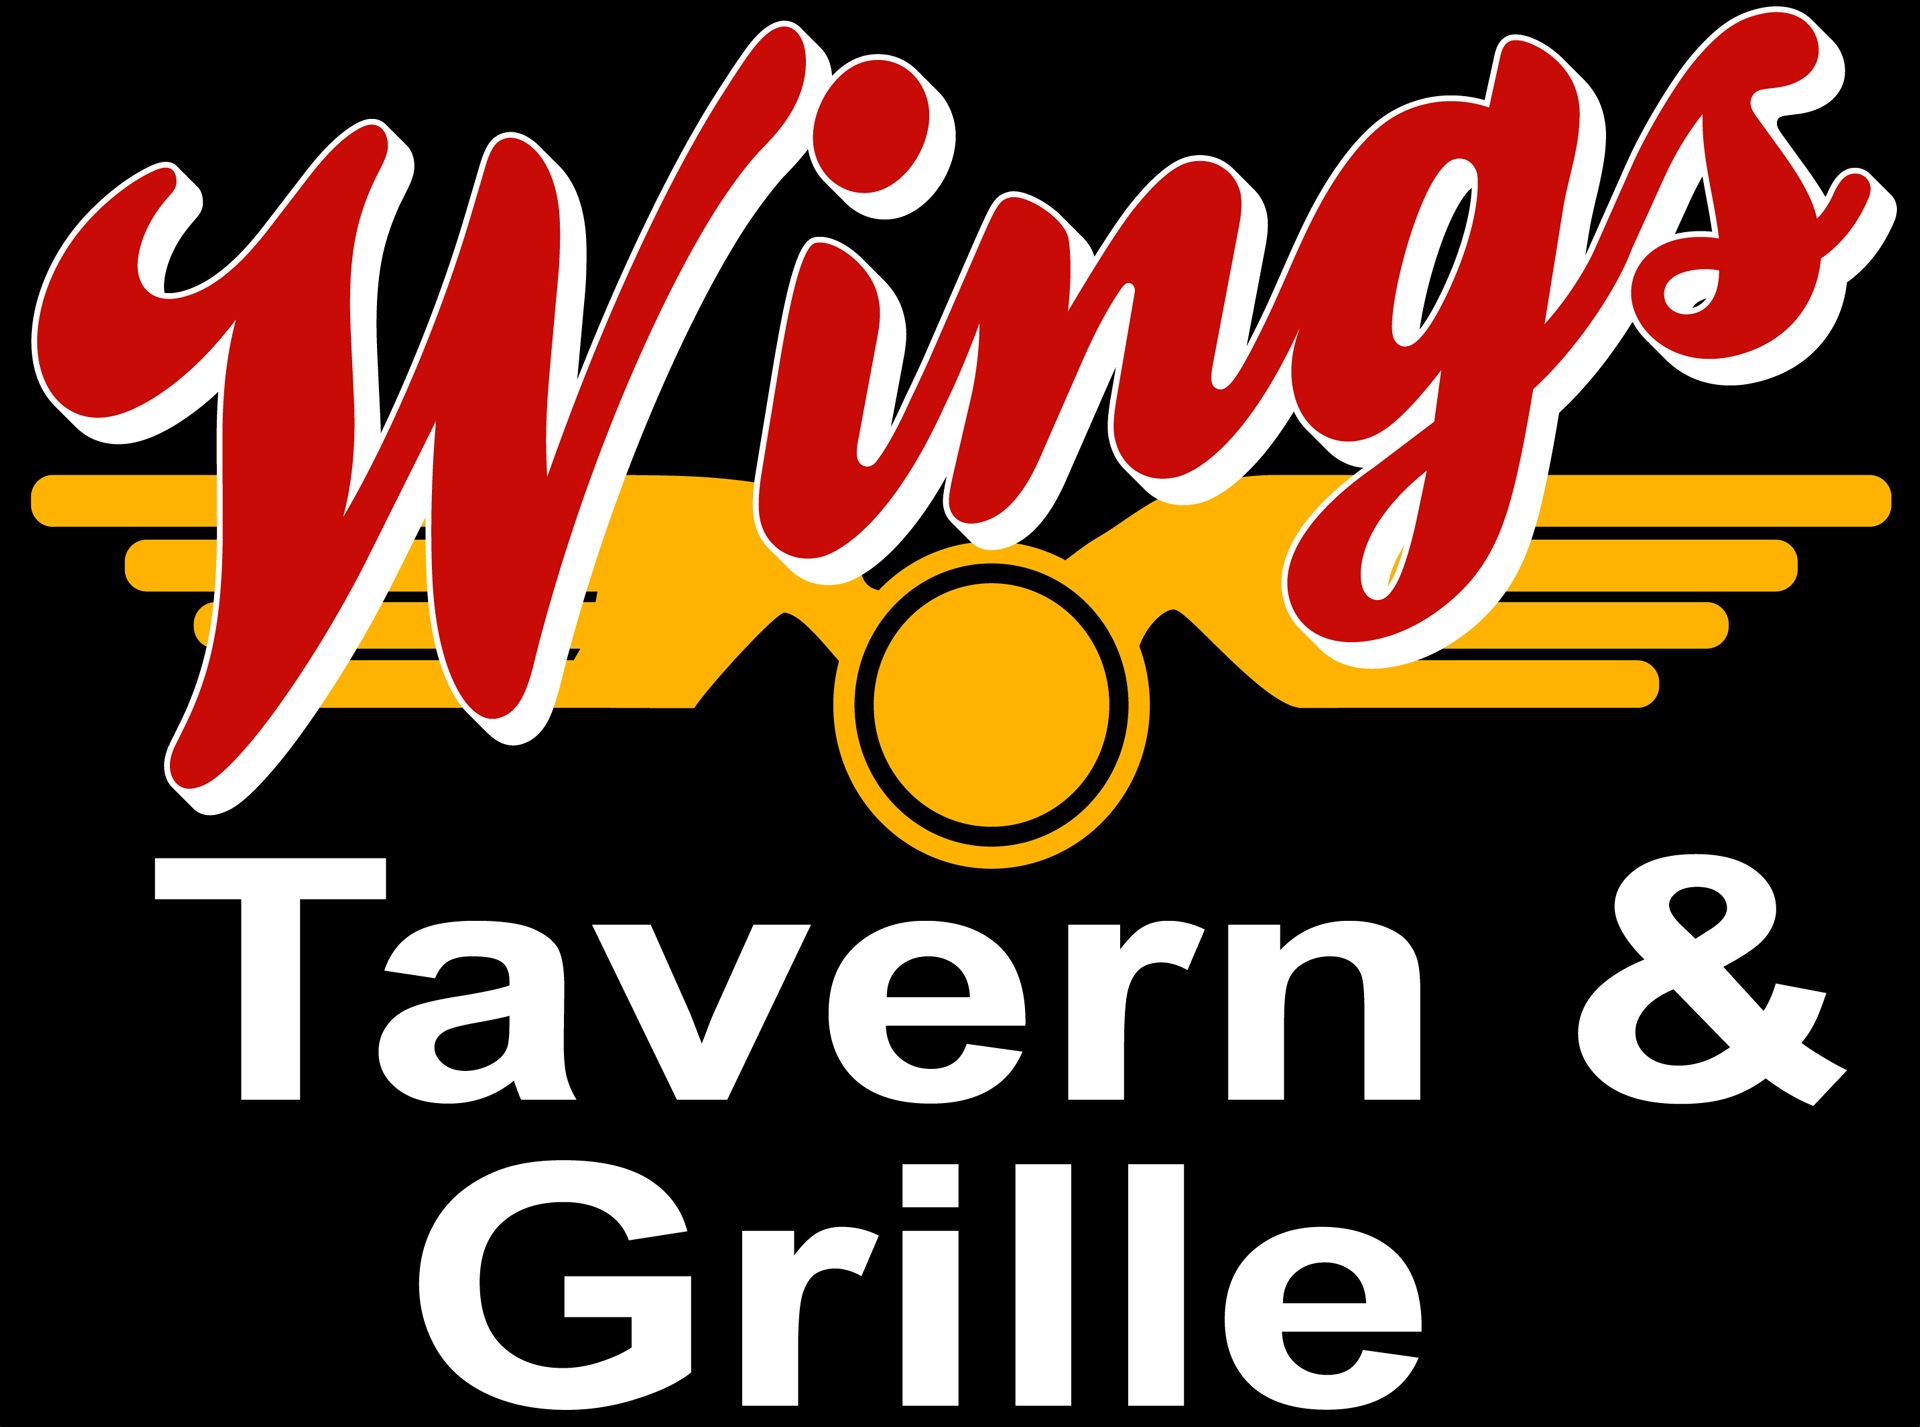 Wing's Tavern & Grille